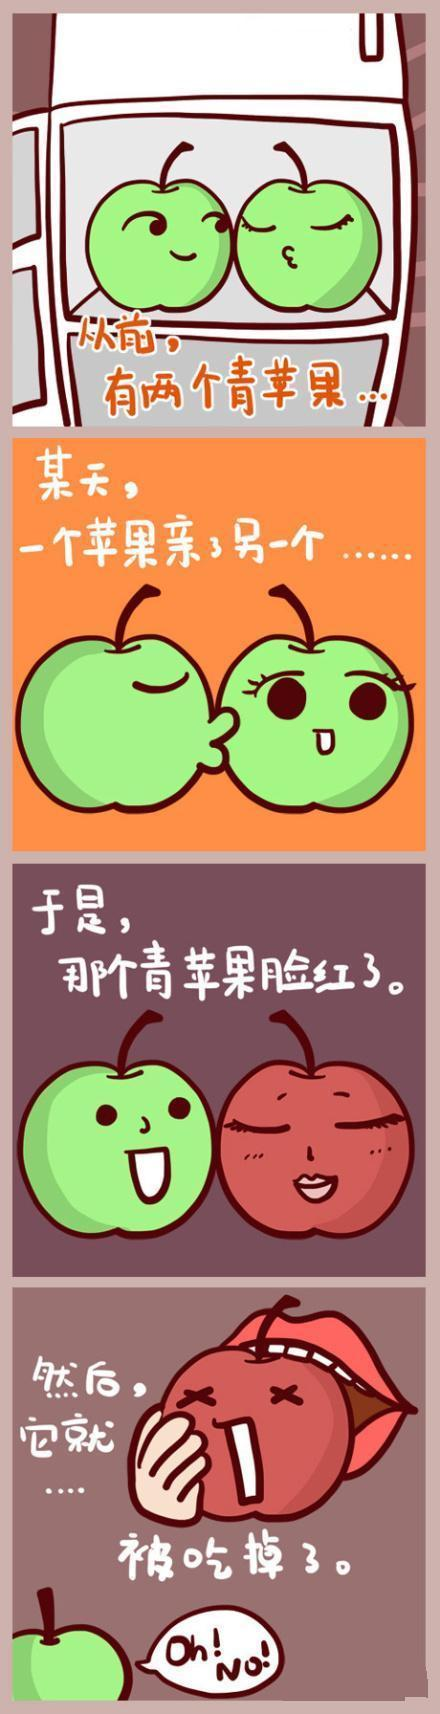 Chinese apple love story.